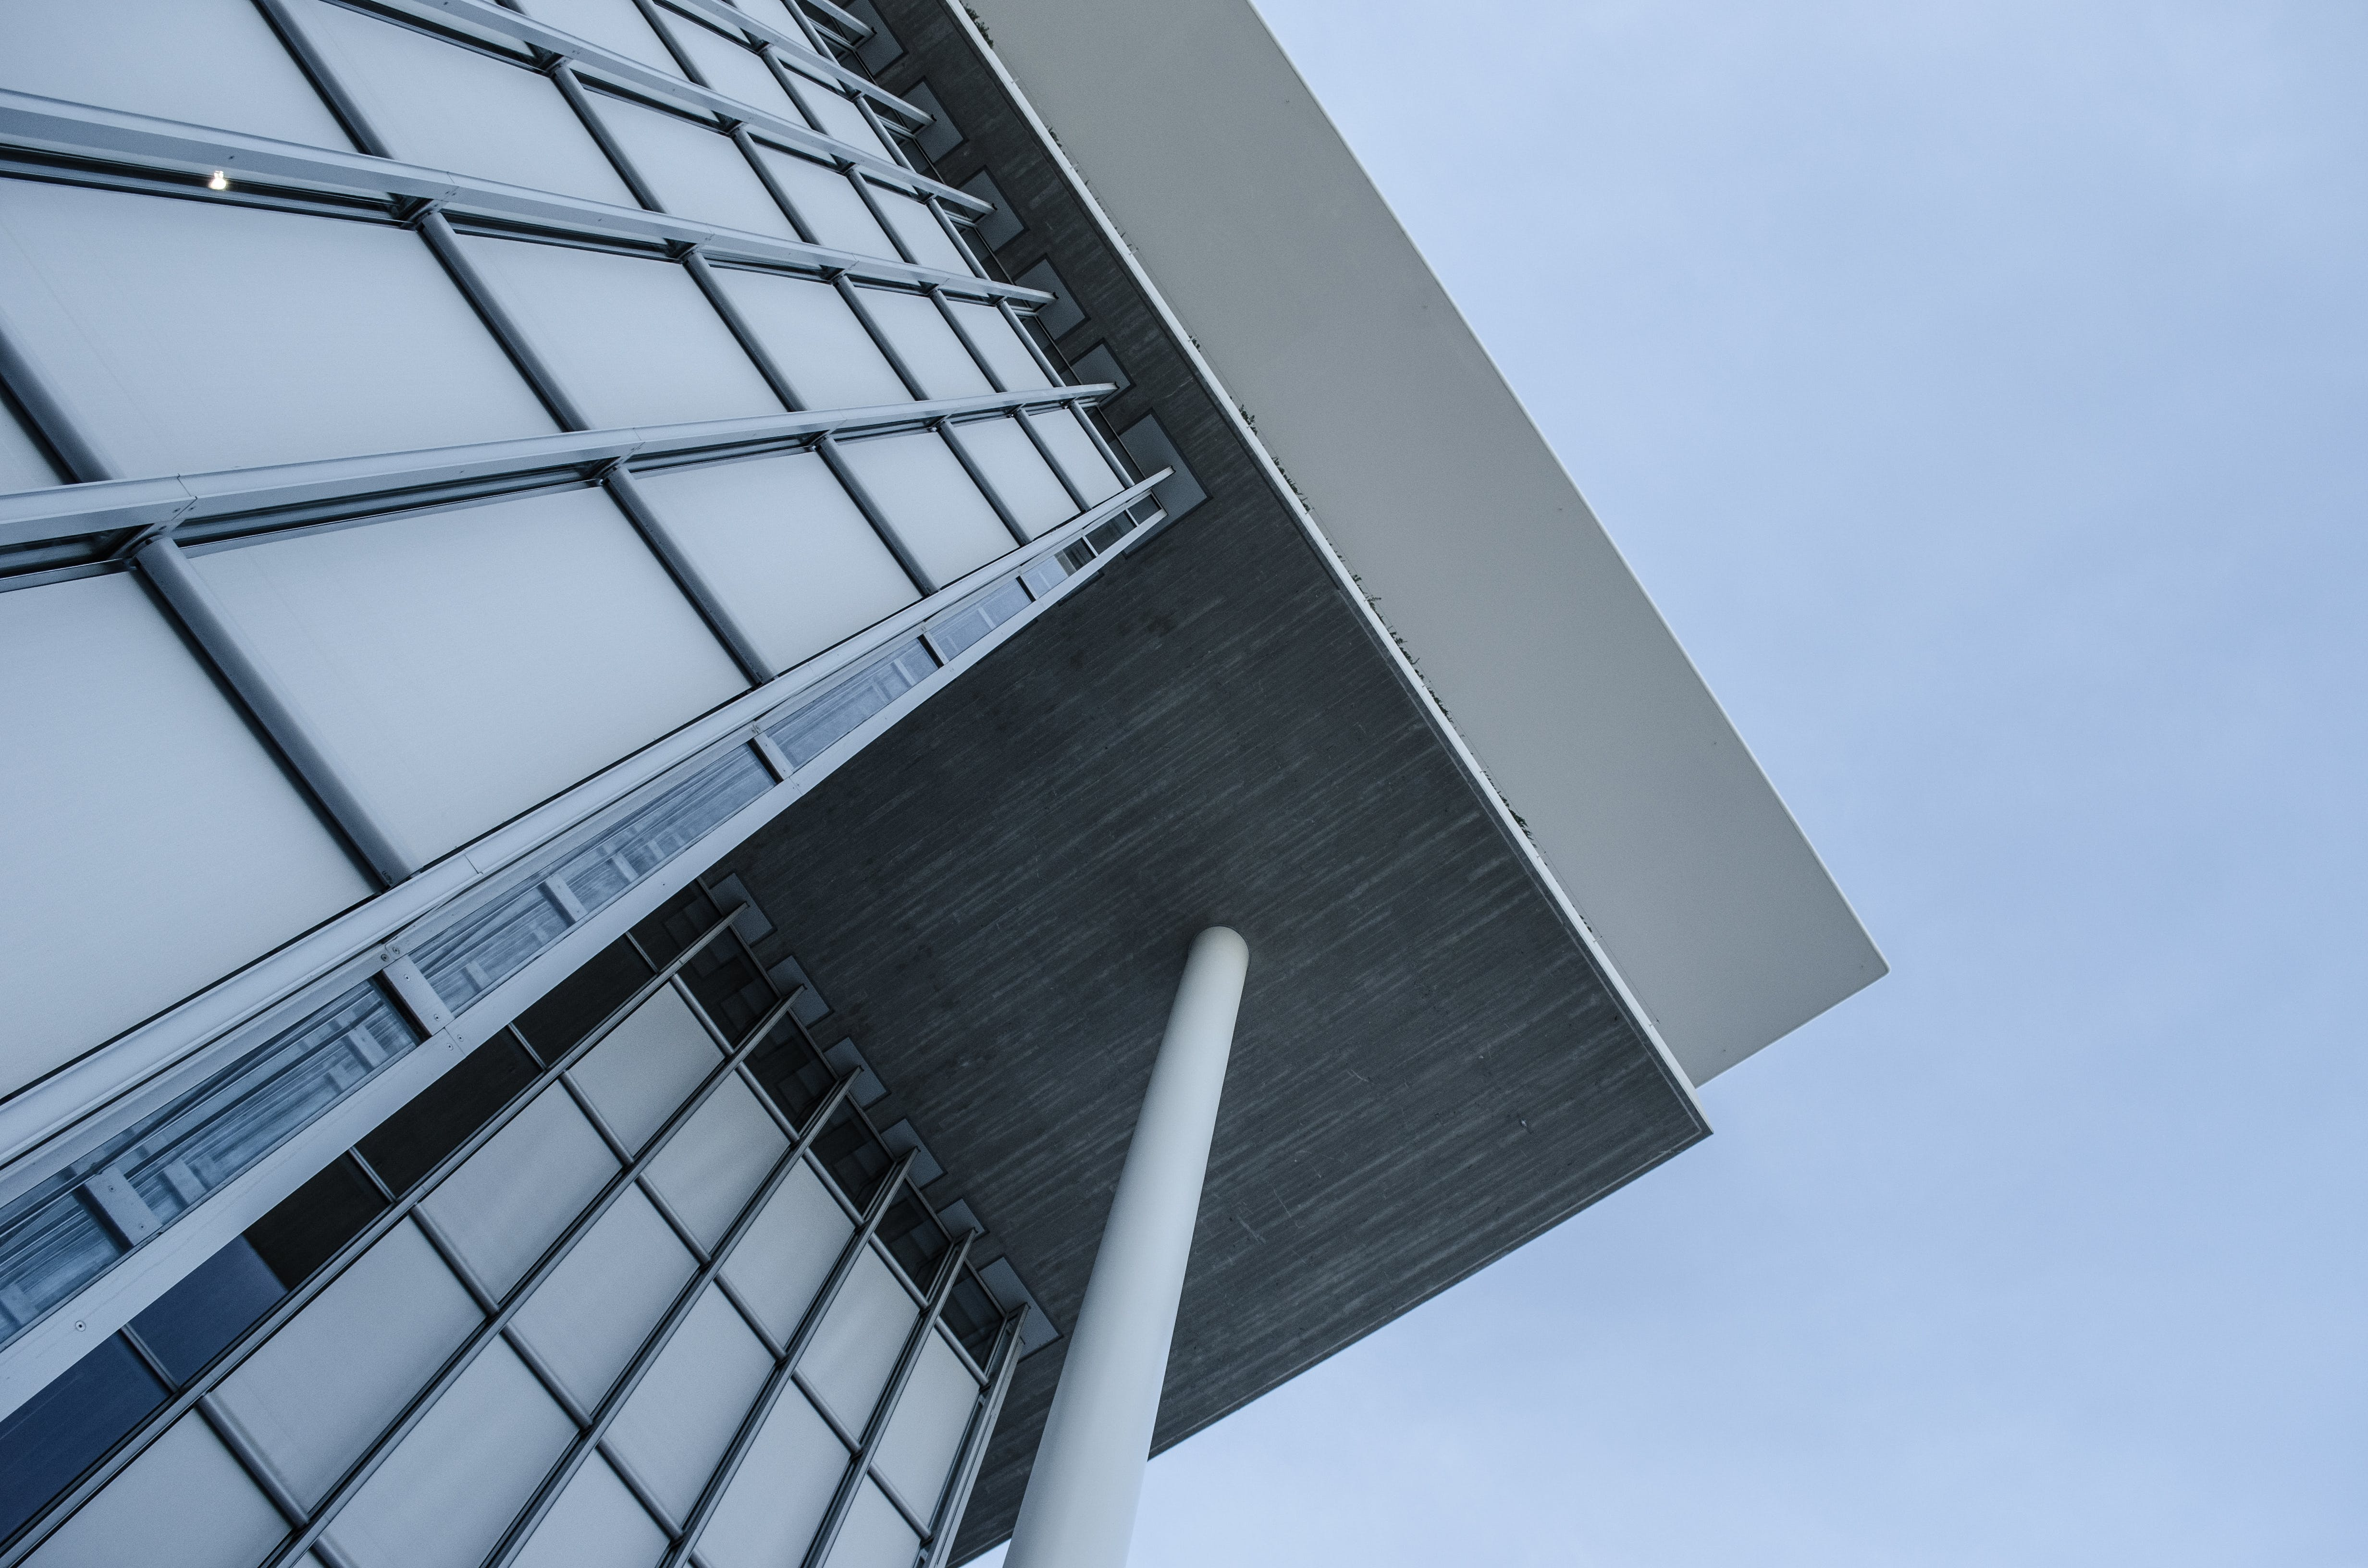 Worm's Eye View Photography Of High-rise Building